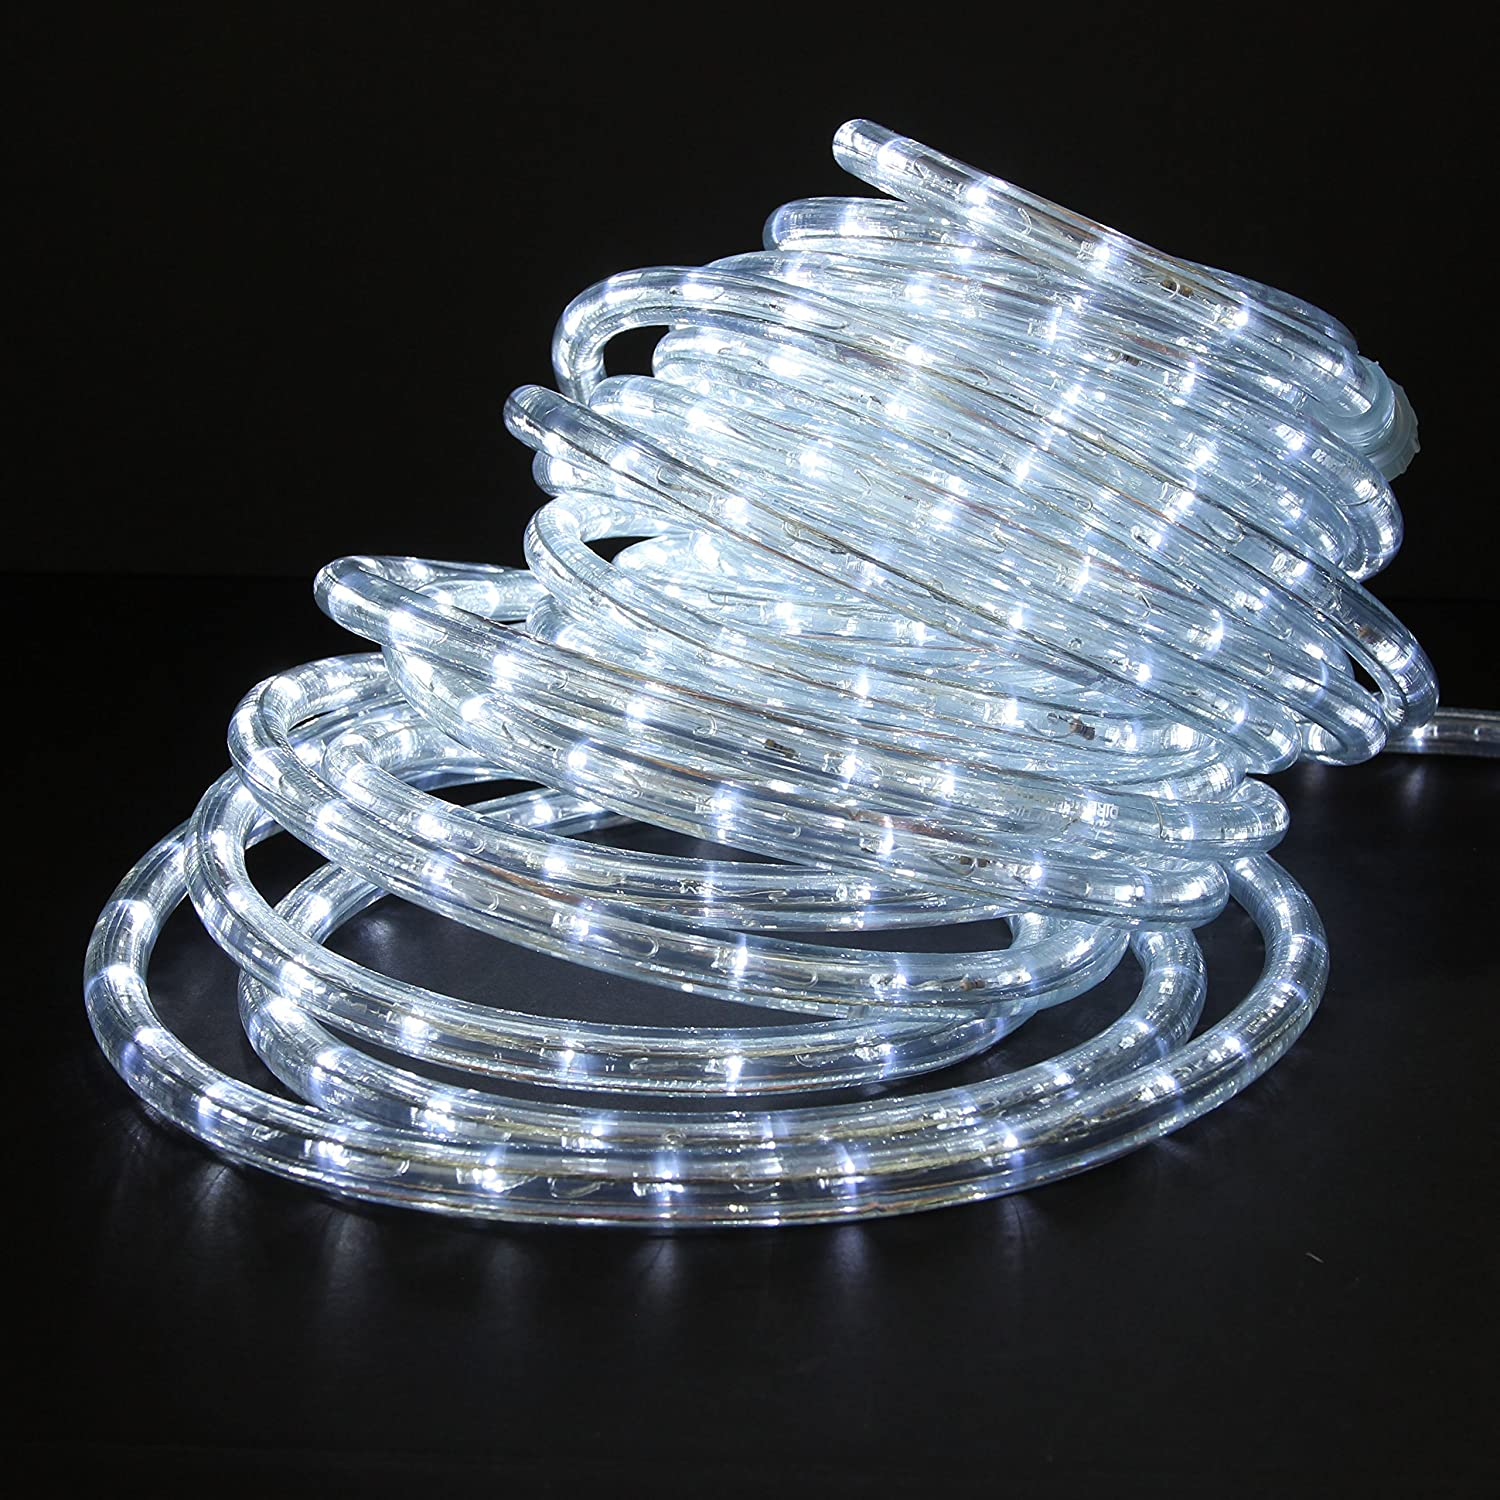 Amazon 50ft 120v cool white super bright led rope light amazon 50ft 120v cool white super bright led rope light direct lighting heavy duty pvc clear rope lights tube 12 expandable to 200 ft mozeypictures Choice Image